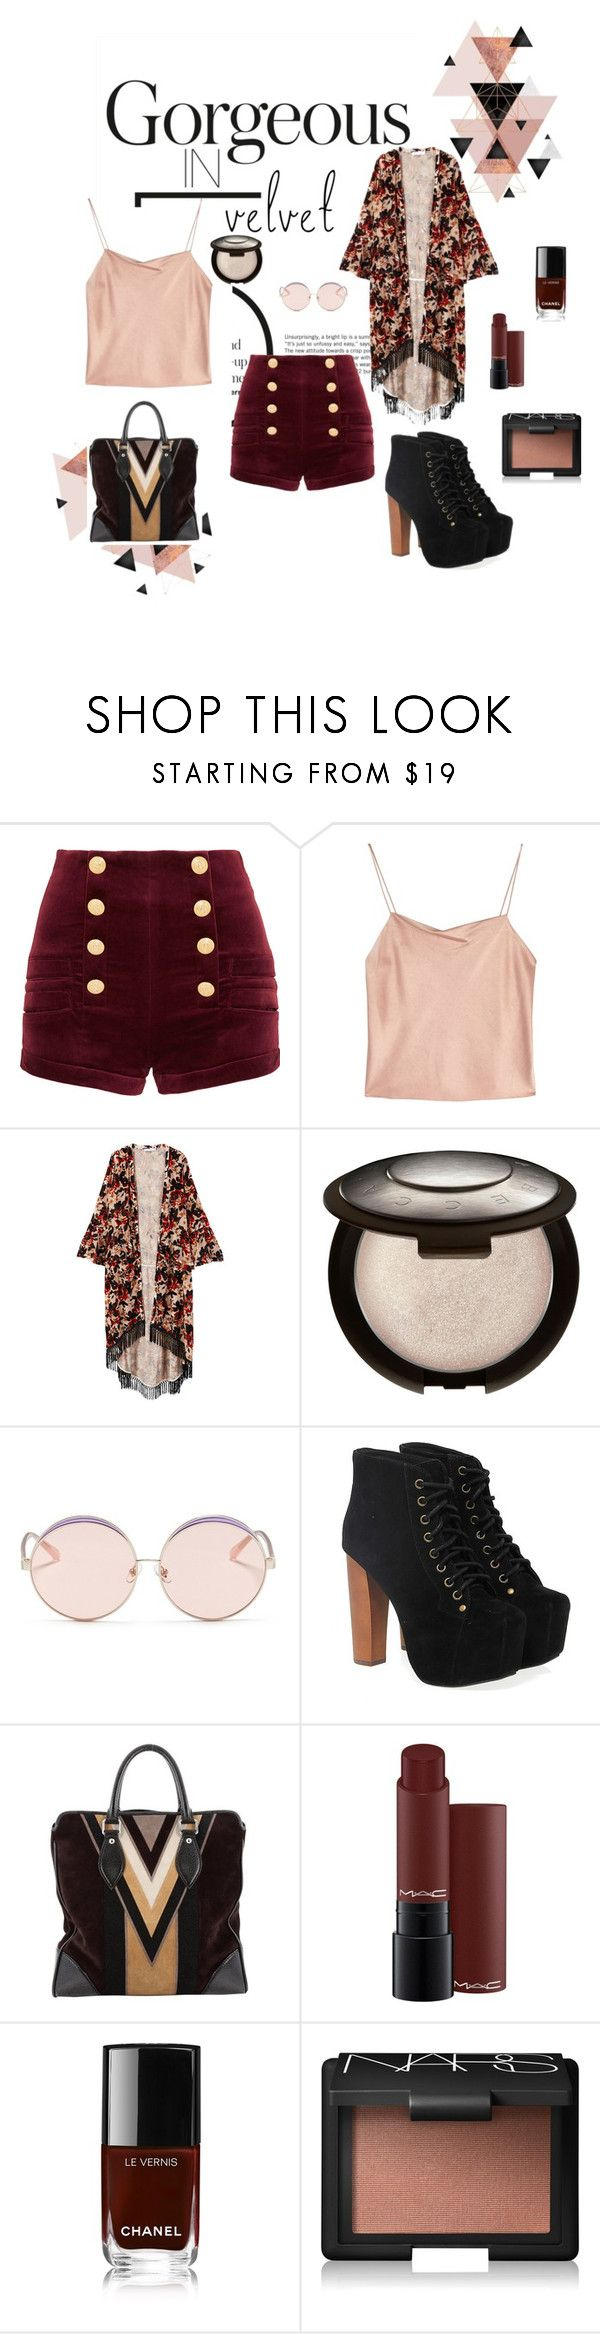 faded love by faerriedust on Polyvore featuring MANGO, Alice + Olivia, Pierre Balmain, Jeffrey Campbell, Louis Vuitton, N°21, NARS Cosmetics, MAC Cosmetics, contest and crushingonvelvet